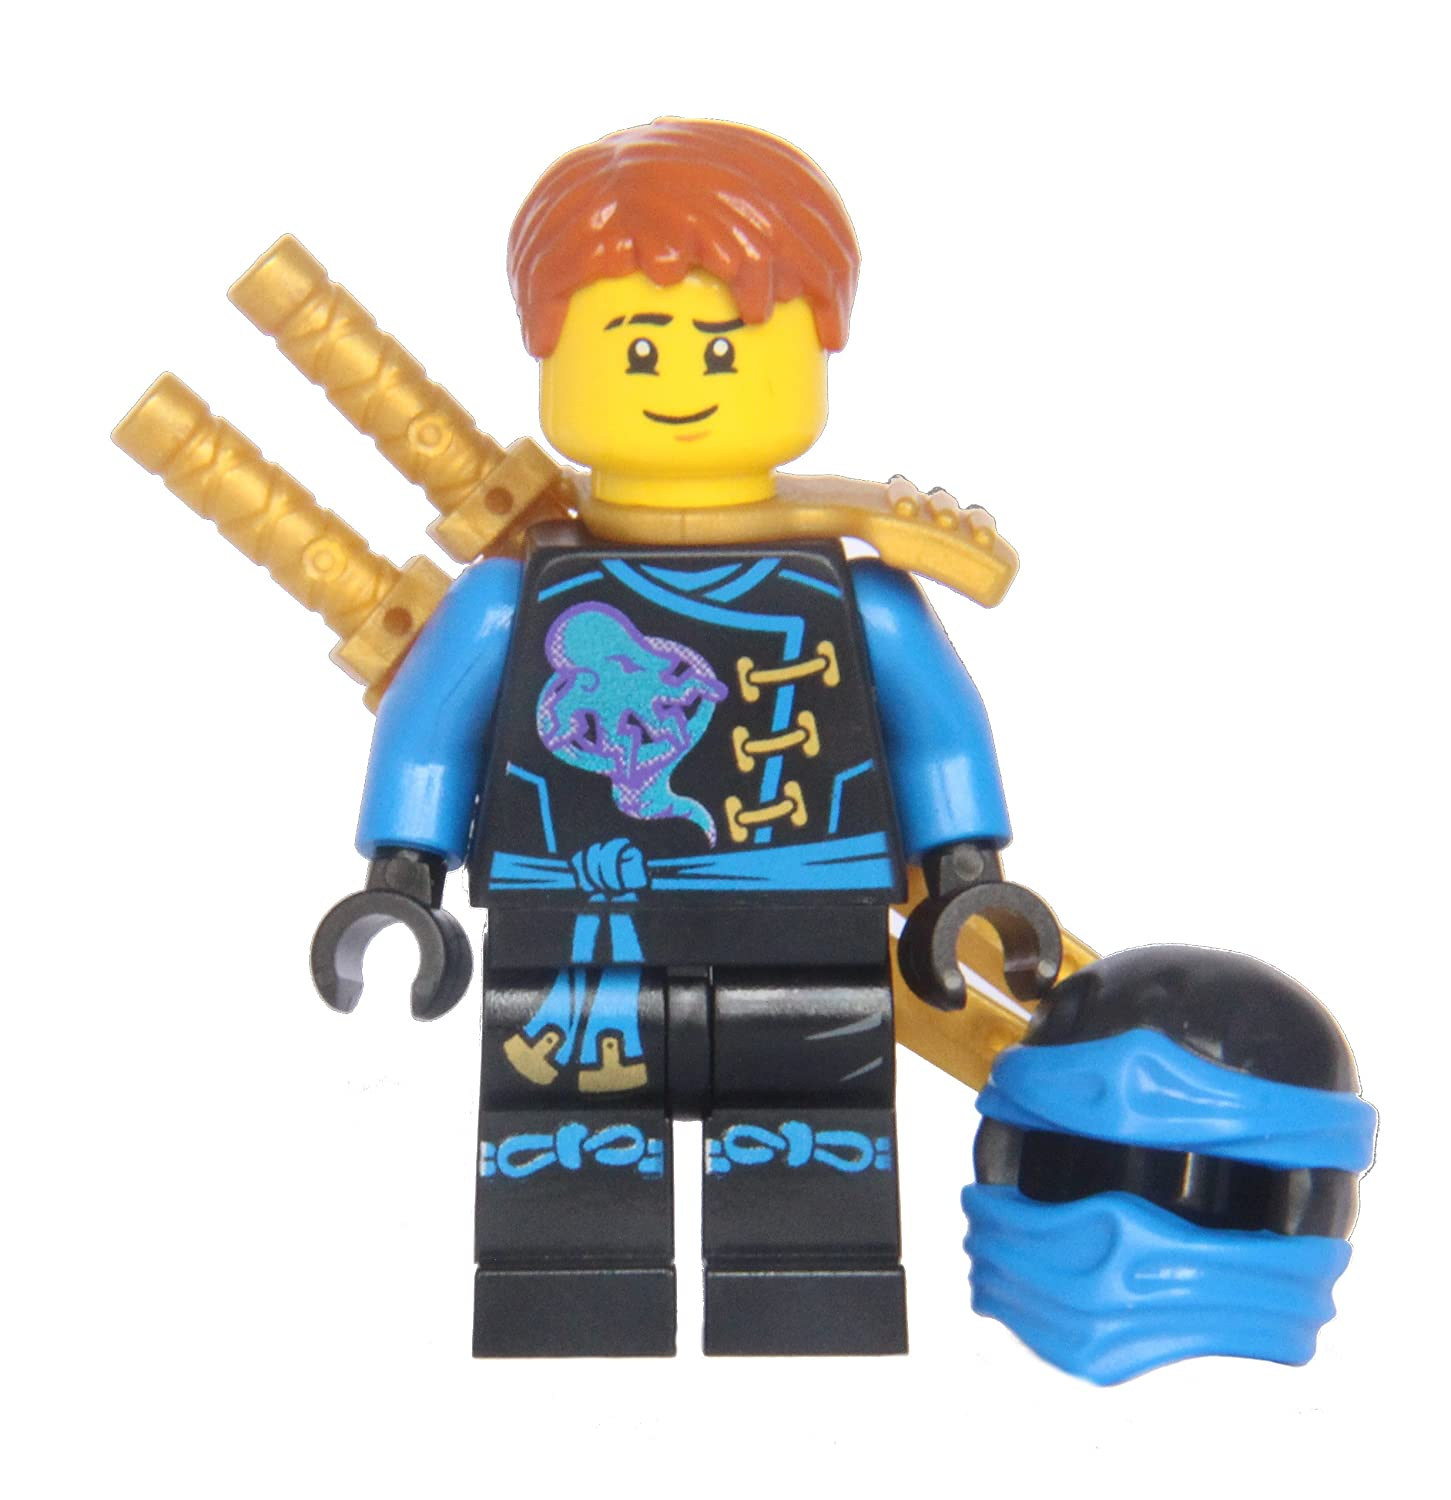 LEGO Ninjago: Pirate Jay - Sky Pirates 2016